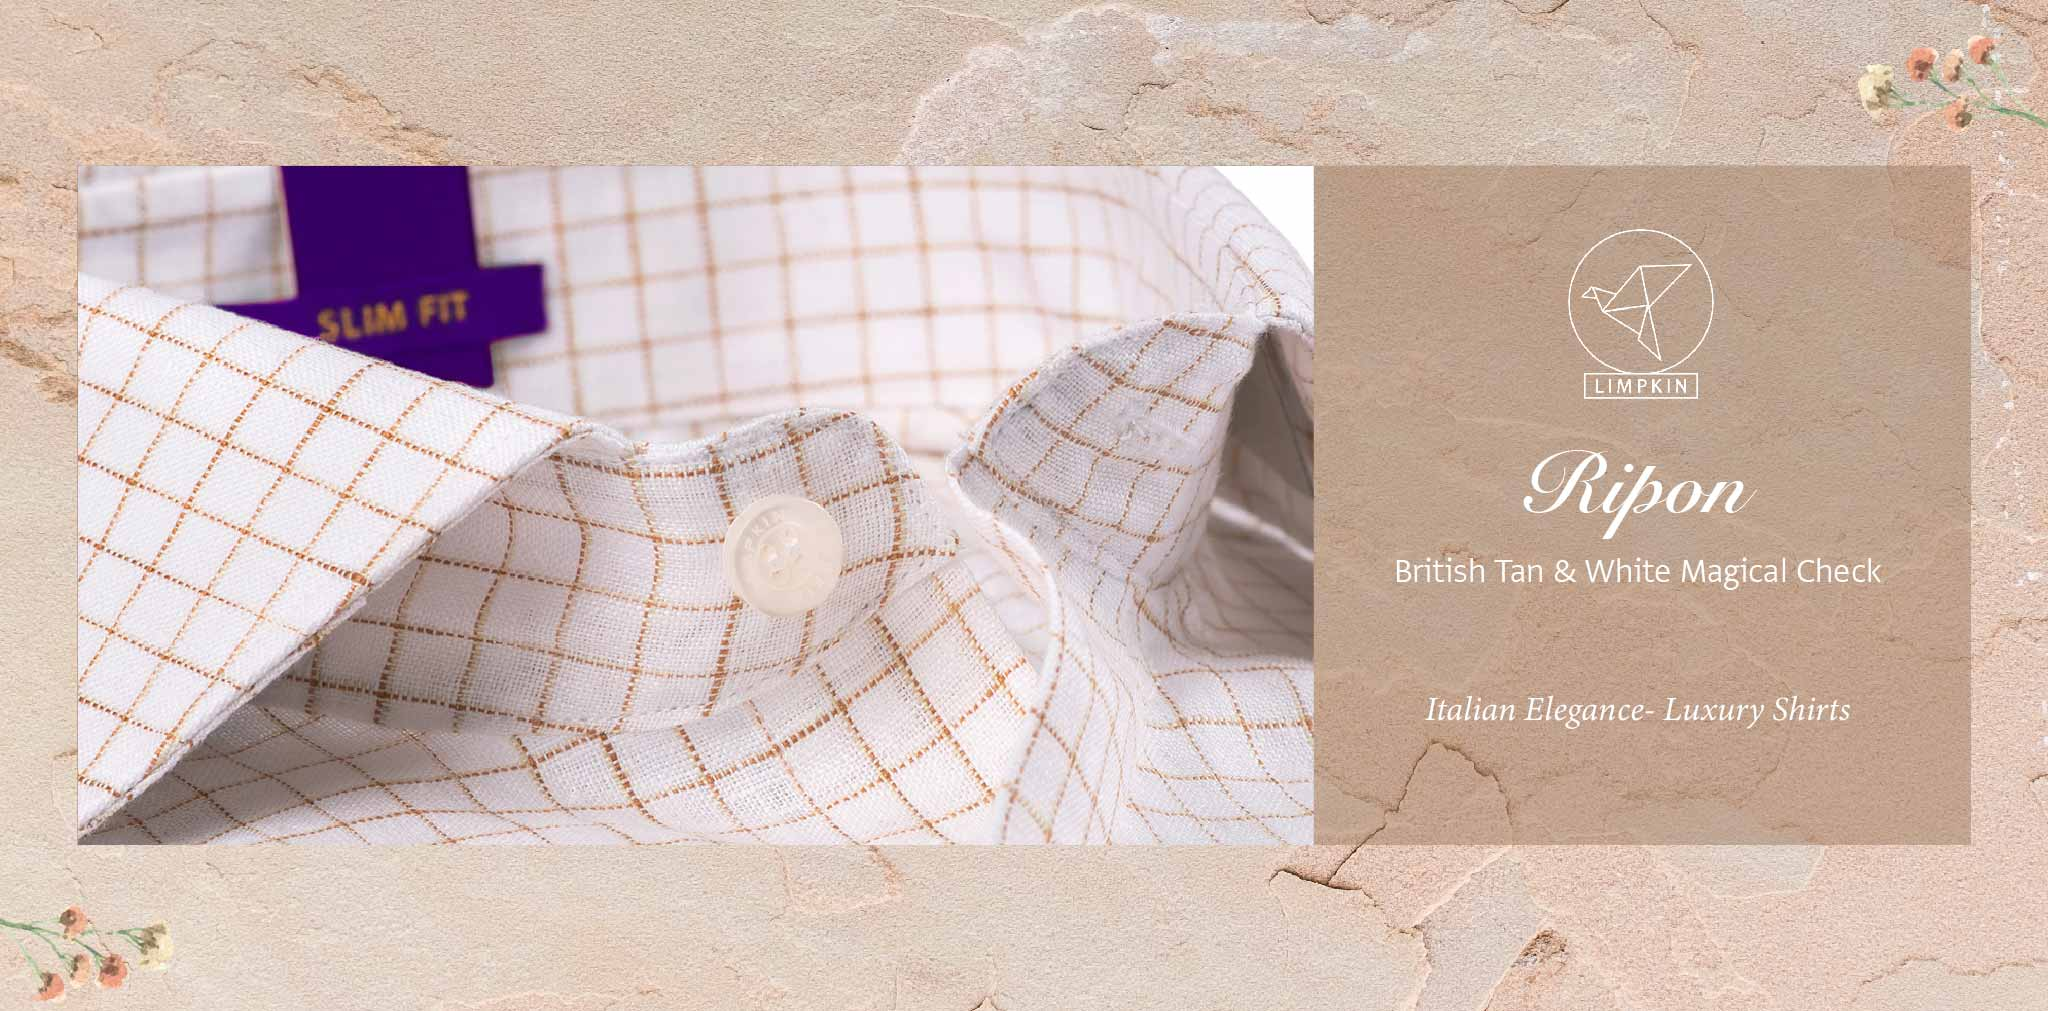 Ripon- British Tan & White Magical Check- 66's Lea Pure Luxury Linen-Delivery from 26th Jan - Banner